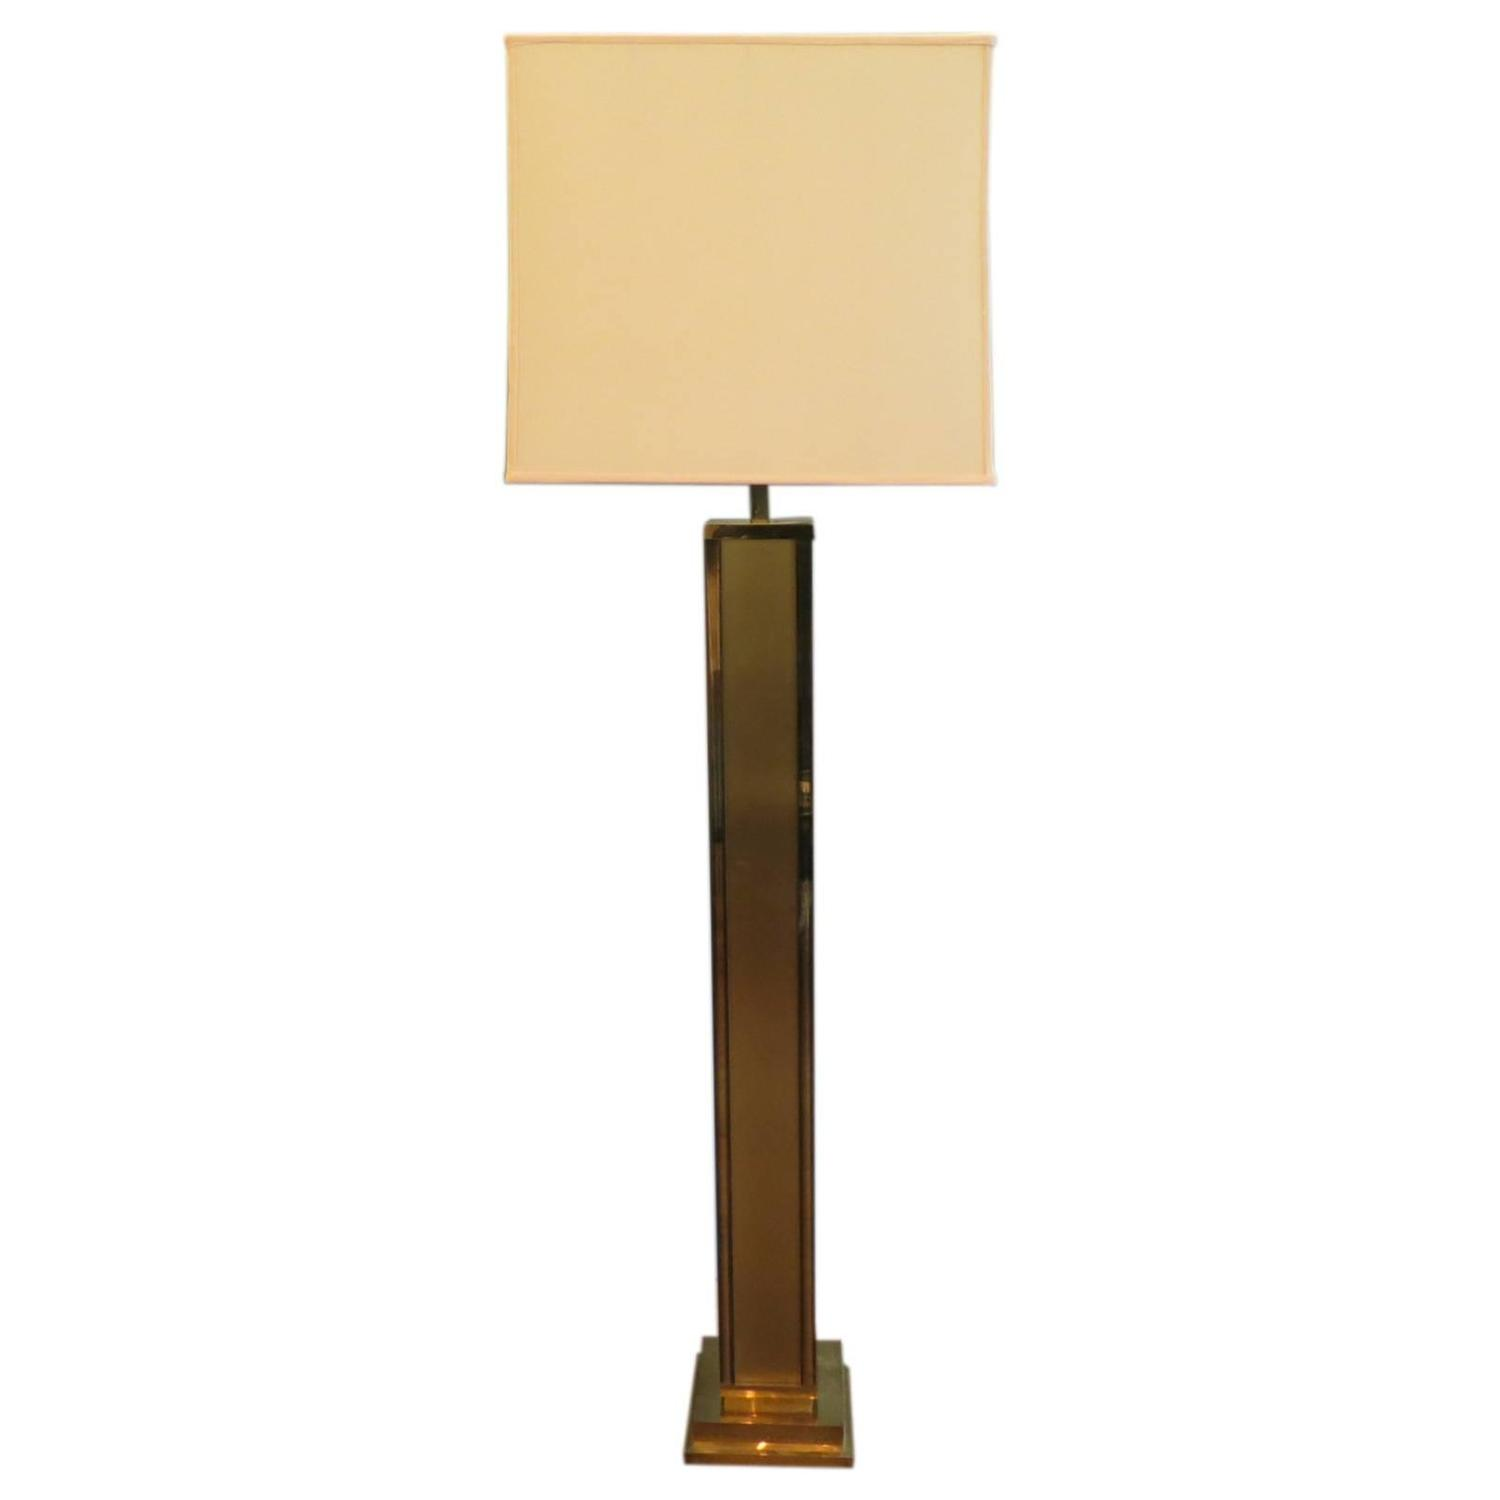 Tall italian brass floor lamp at 1stdibs for Tall lantern floor lamp